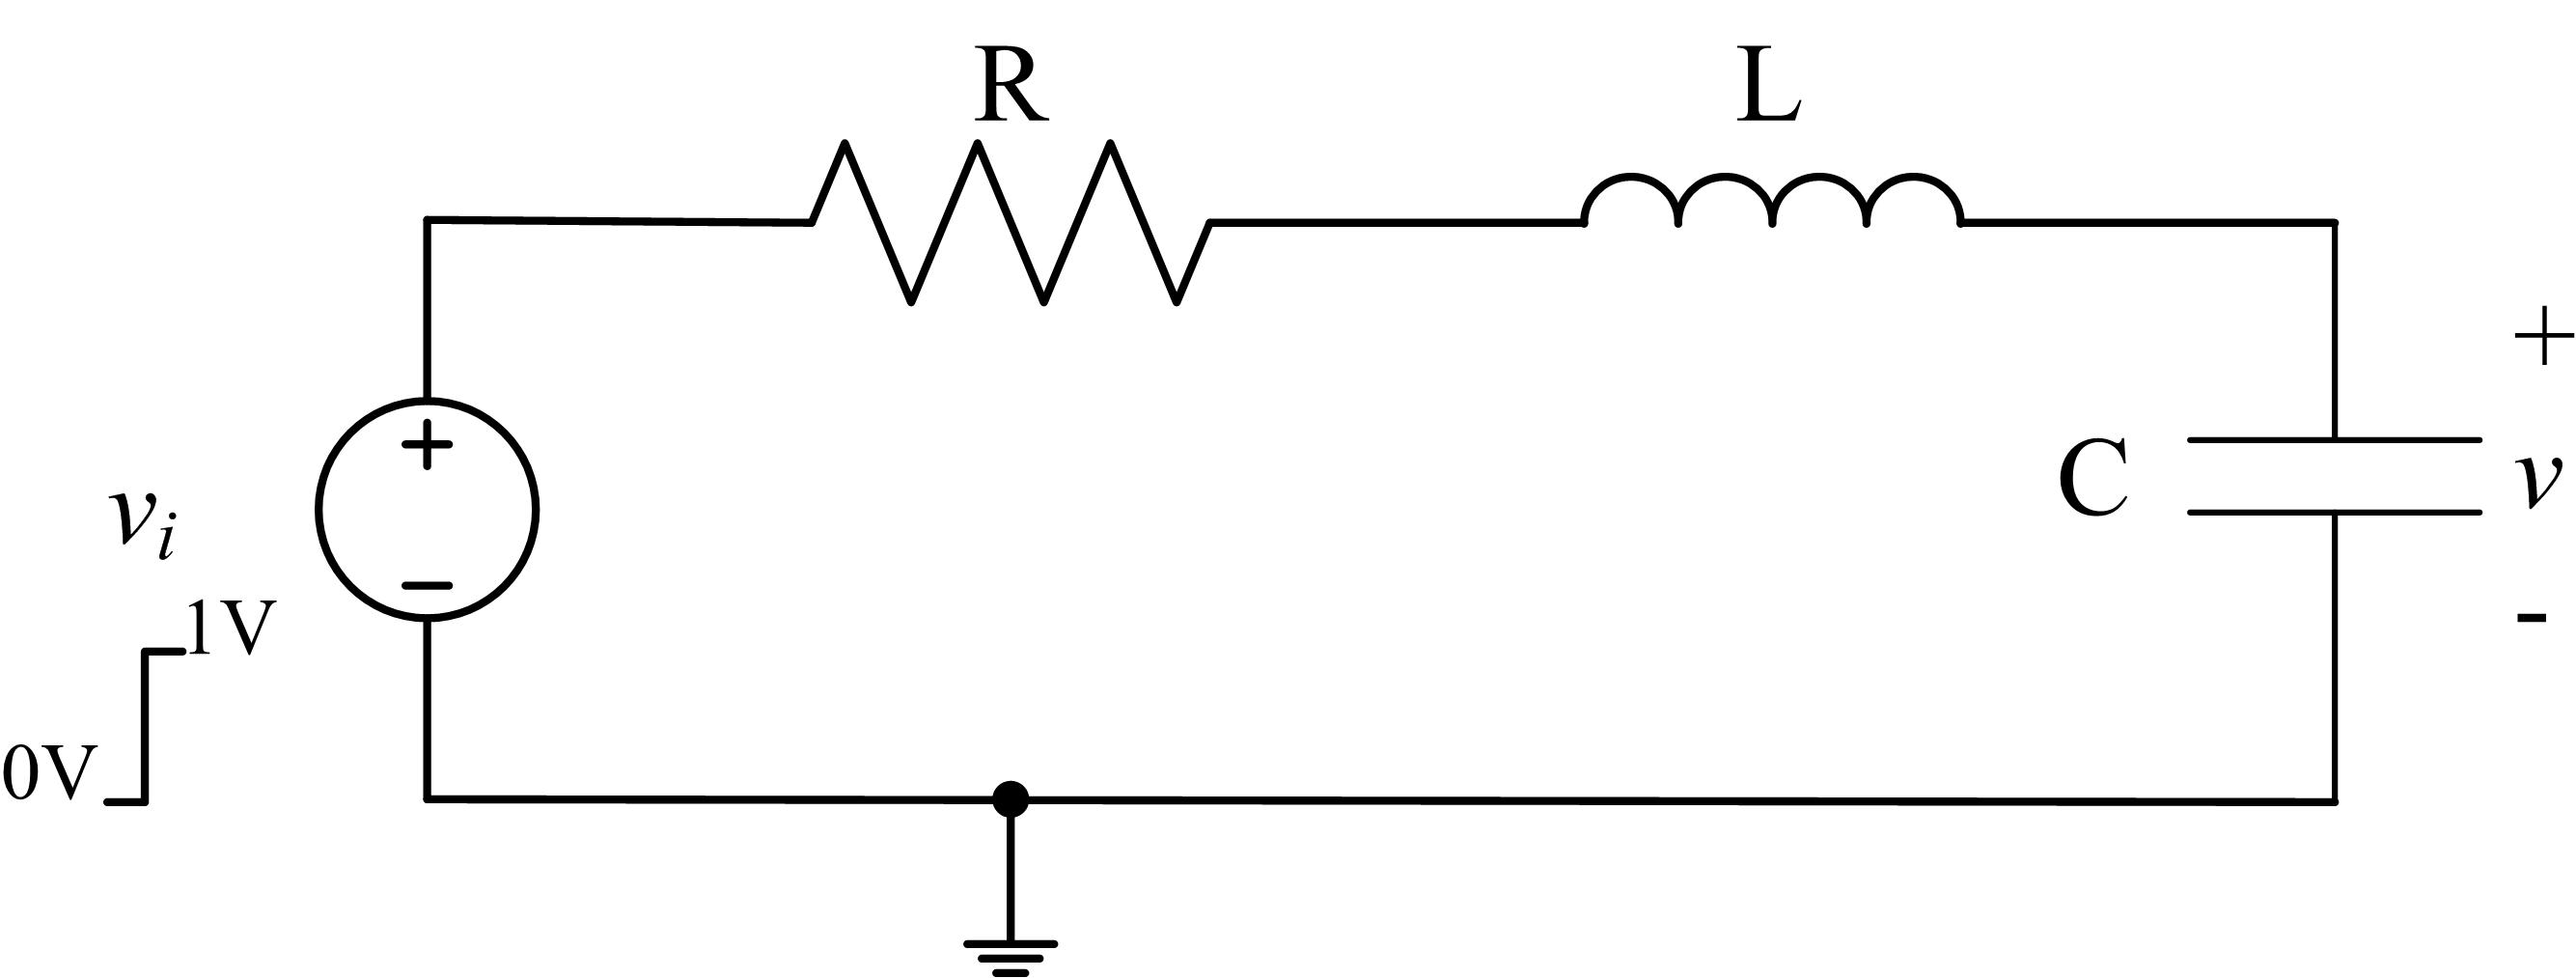 Circuit Rl Srie Pdf Rc Rlc Series Circuits Your Electrical Engineering Tutorials Ee L Step Resp